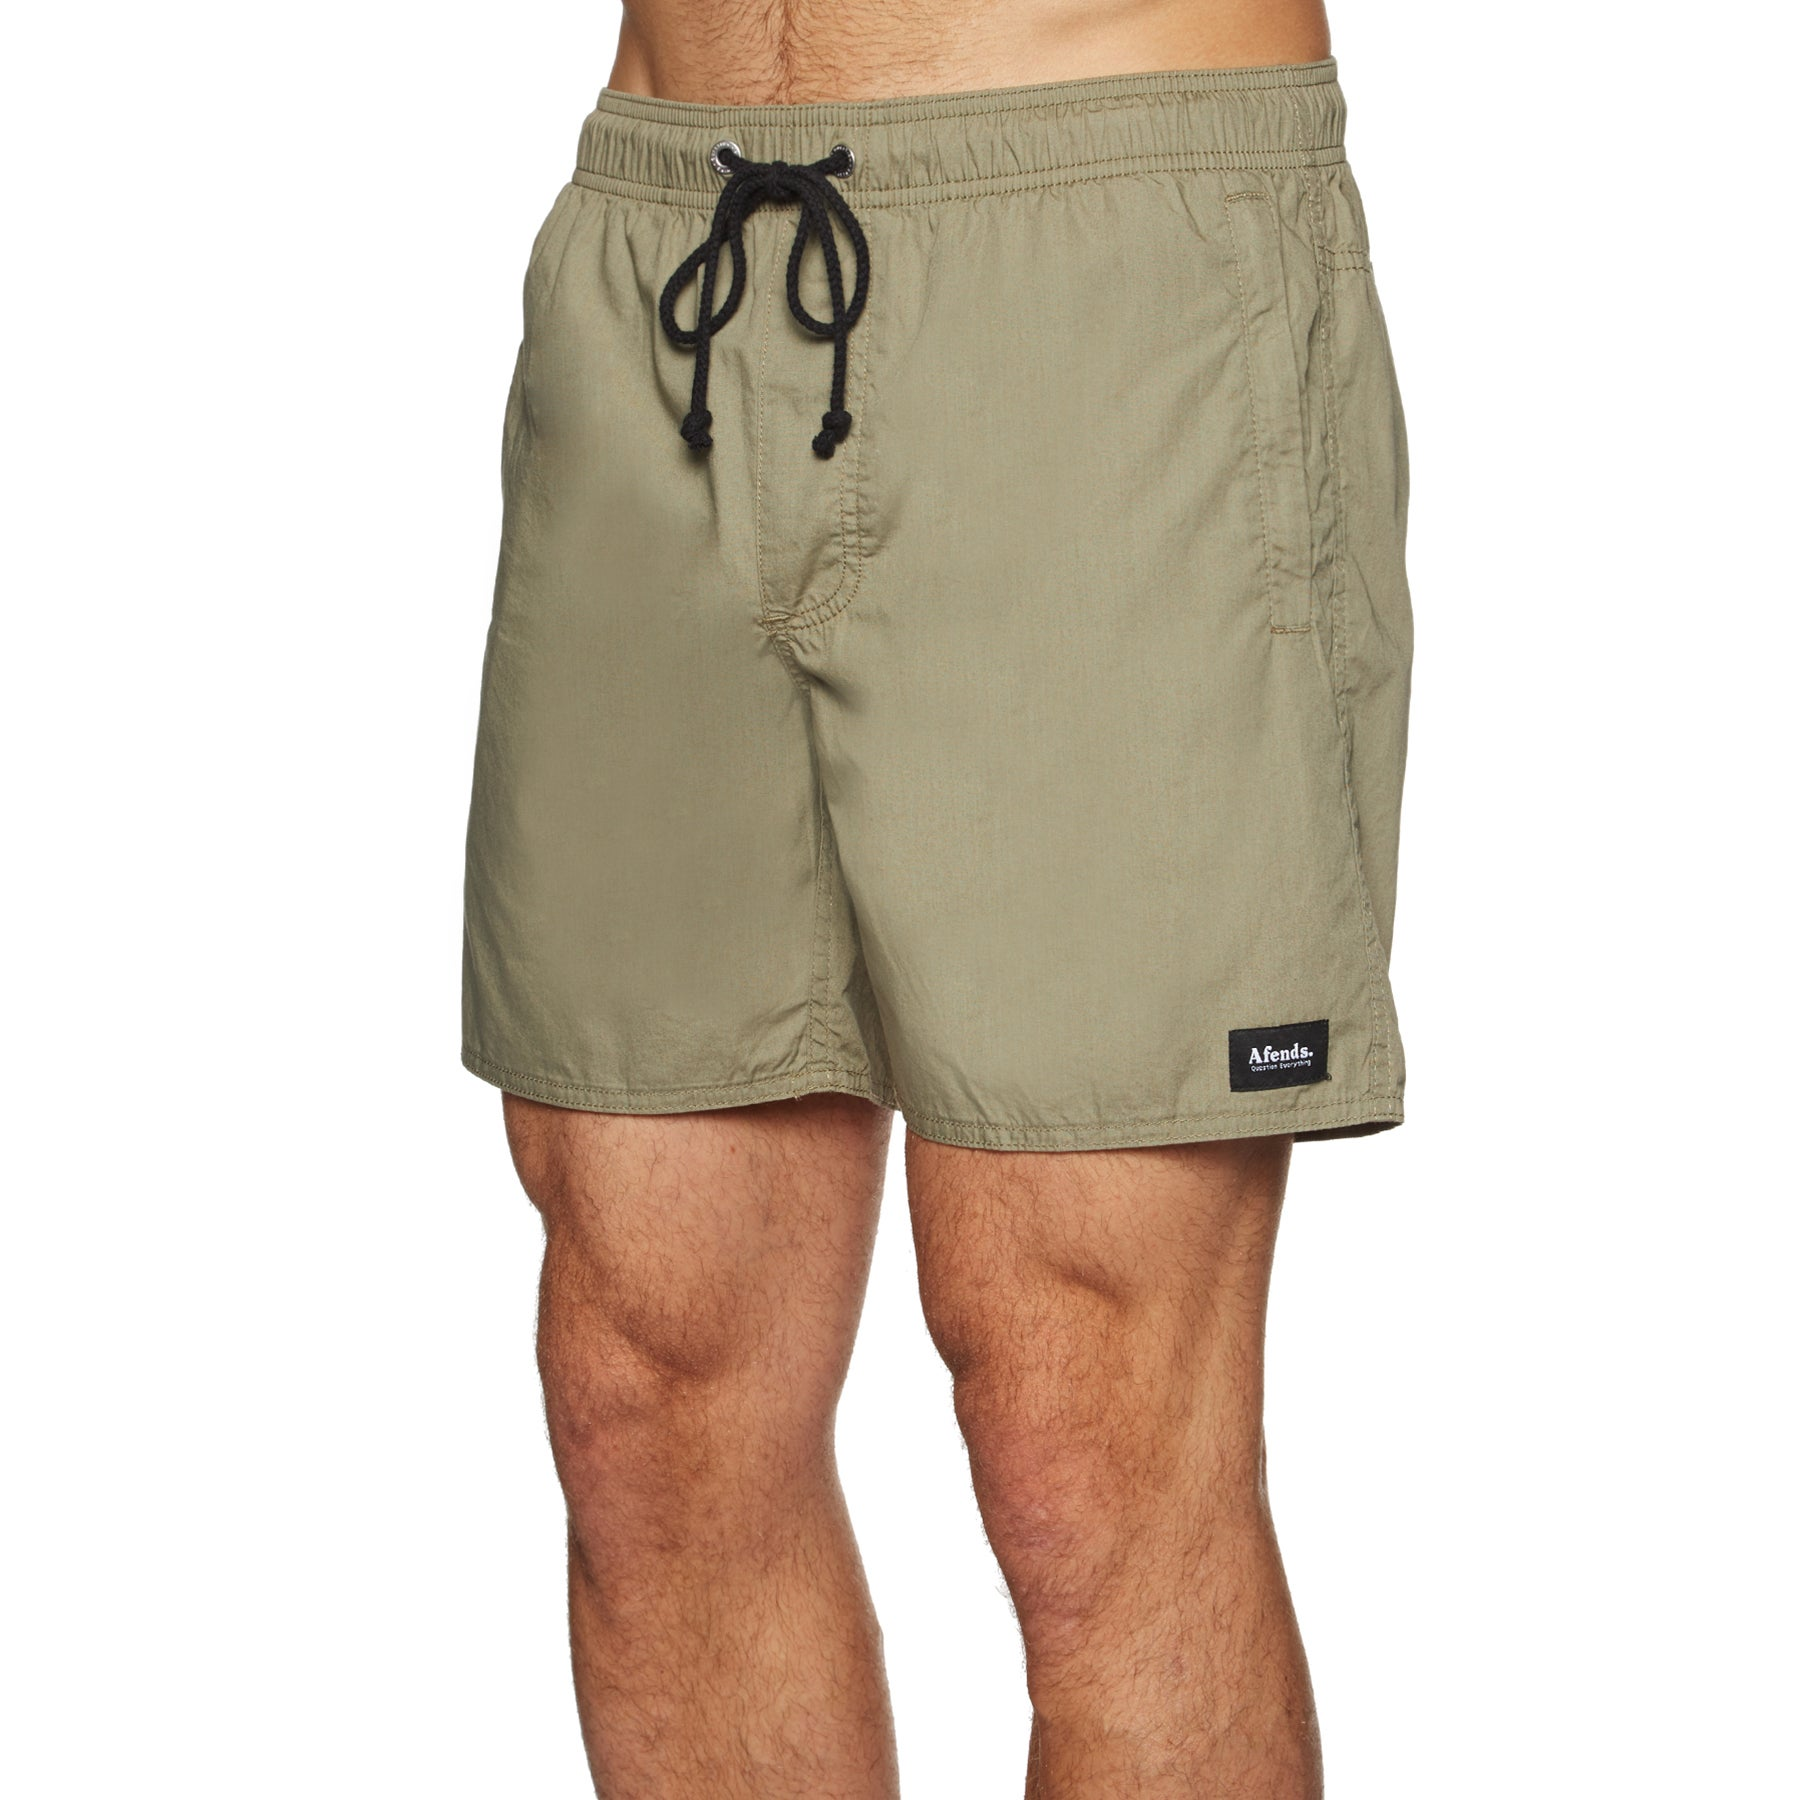 Afends Baywatch Boardshorts - Military